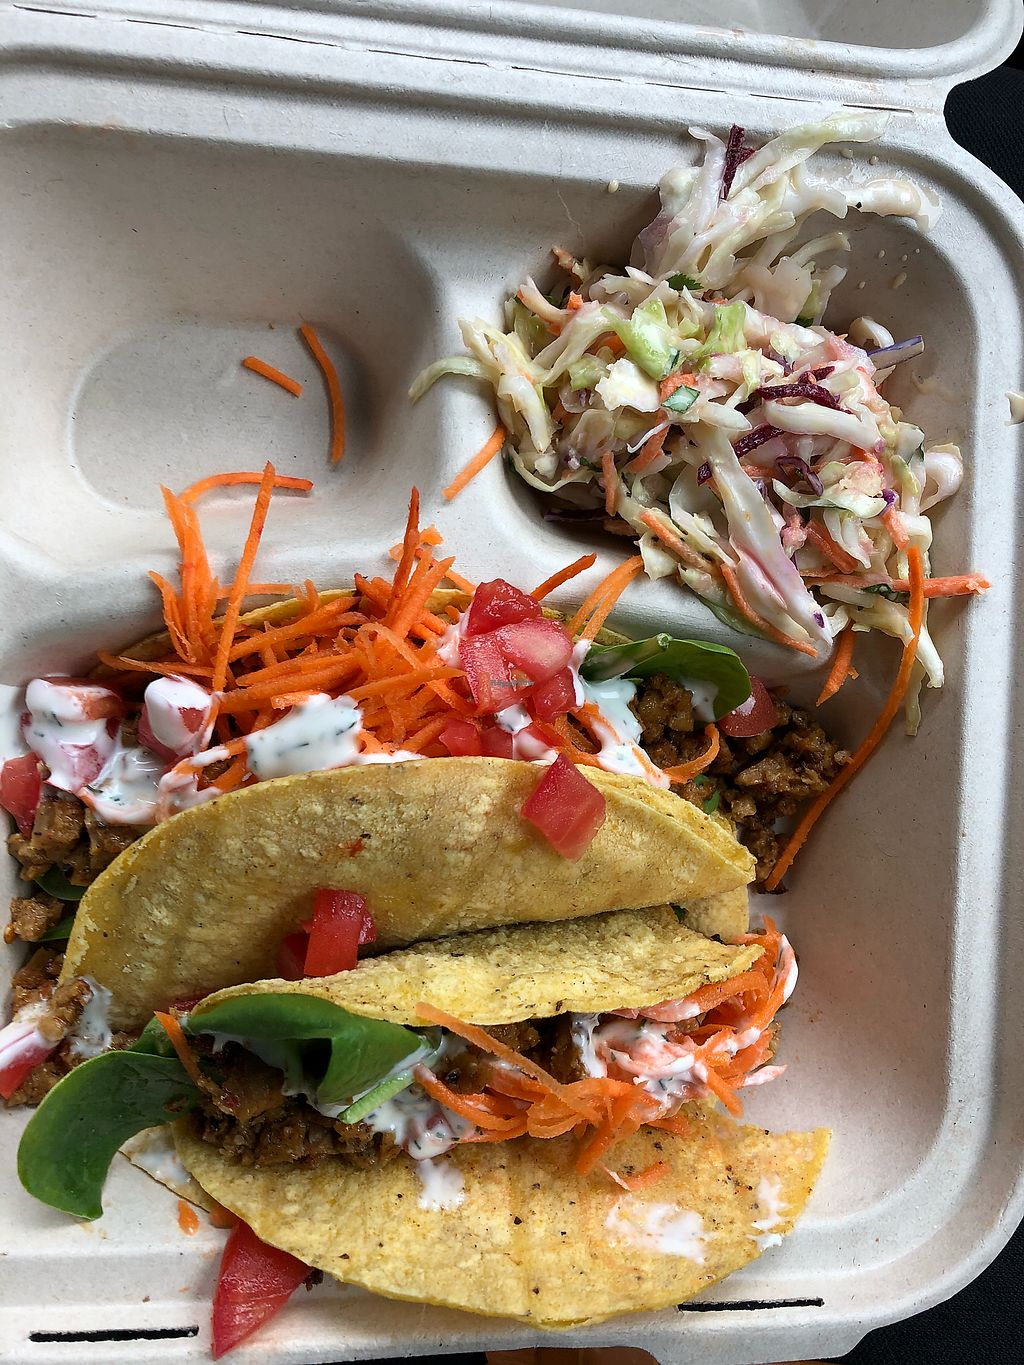 """Photo of The Wild Cow  by <a href=""""/members/profile/Awake1234"""">Awake1234</a> <br/>Delicious Vegan Chipotle Seitan Tacos - to go <br/> April 16, 2018  - <a href='/contact/abuse/image/19759/386898'>Report</a>"""